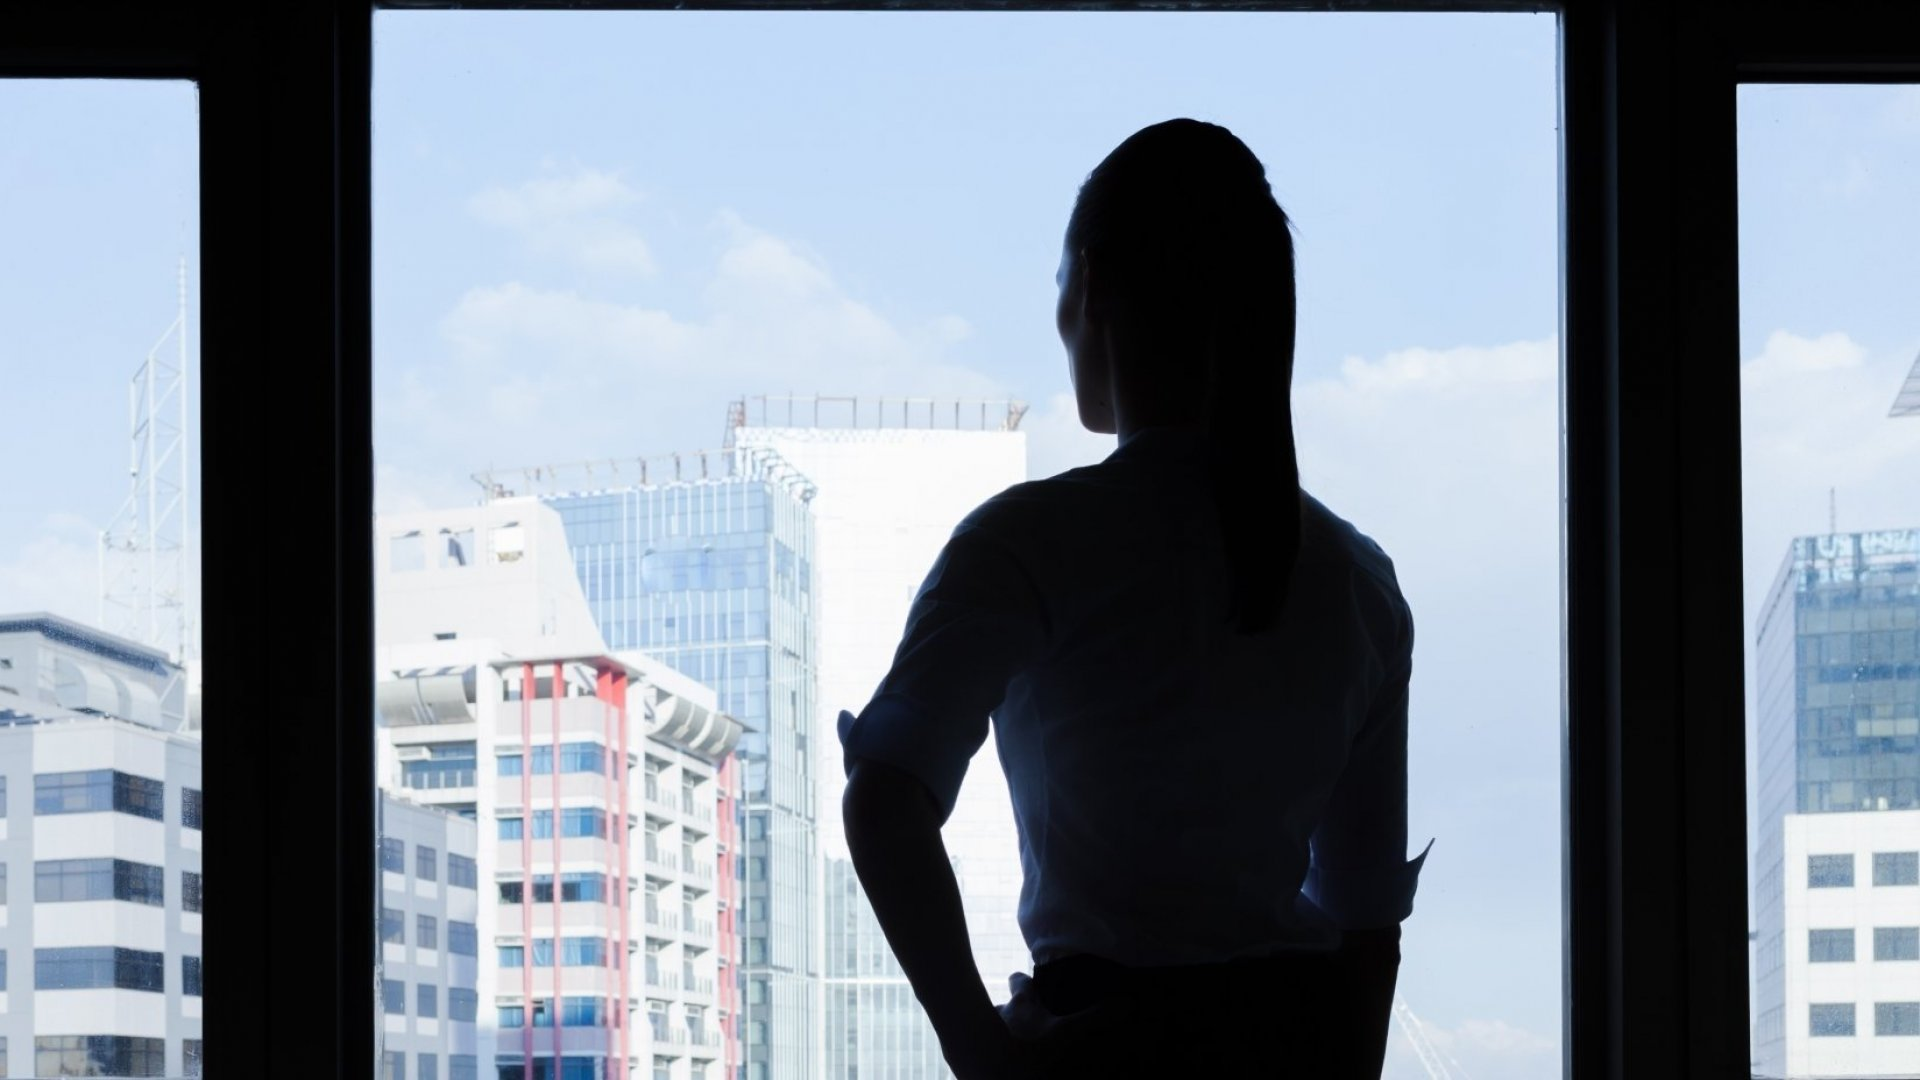 Will 50% of S&P 500 CEOs Be Female by 2056?